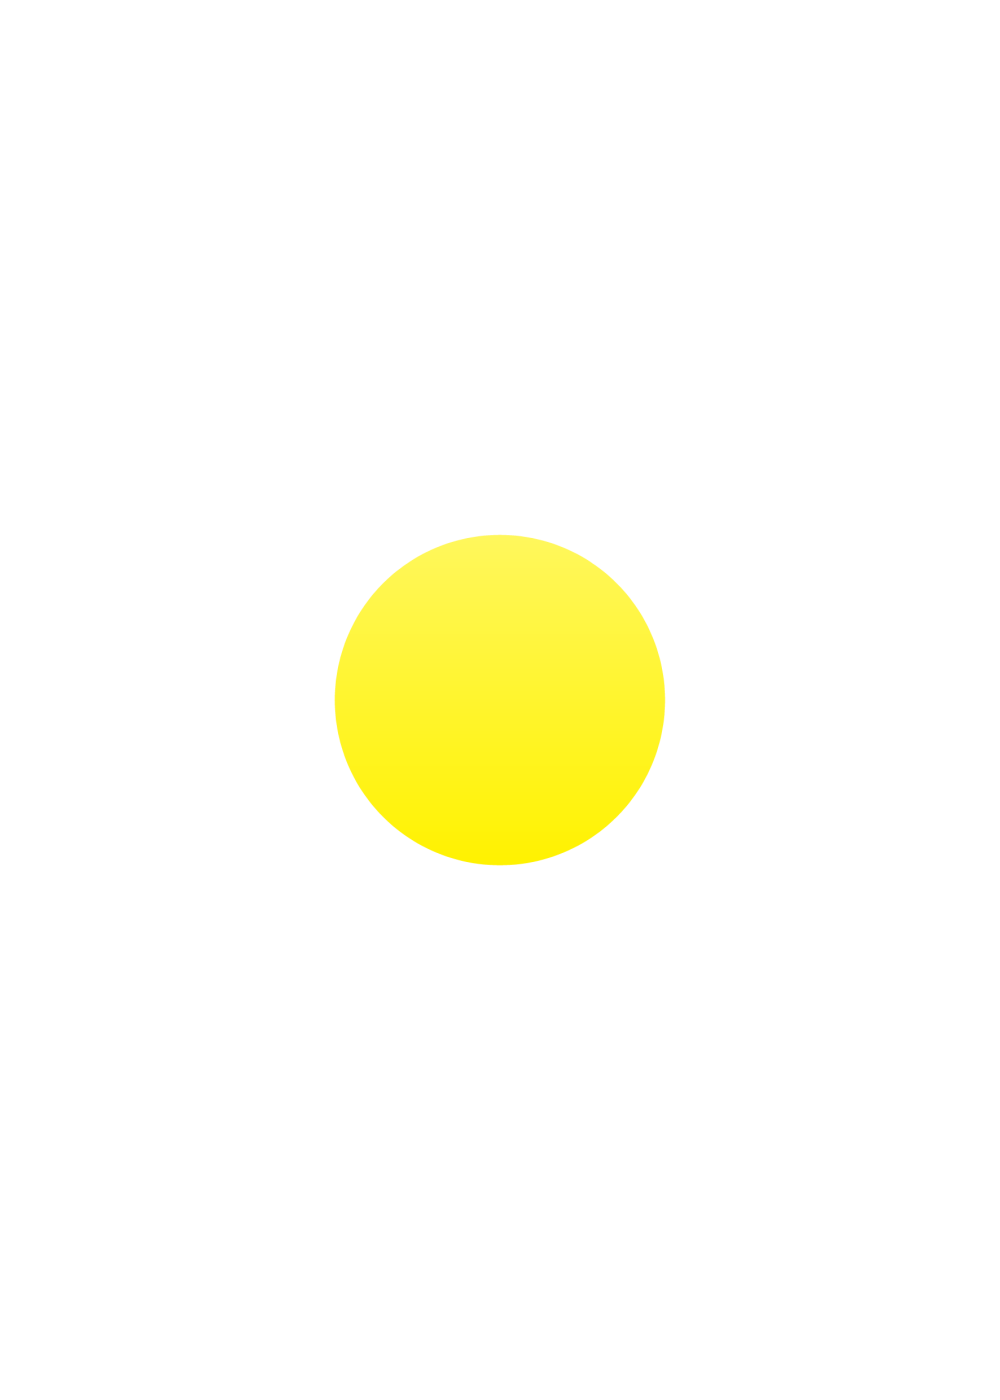 Yellow ball png. The vertical village